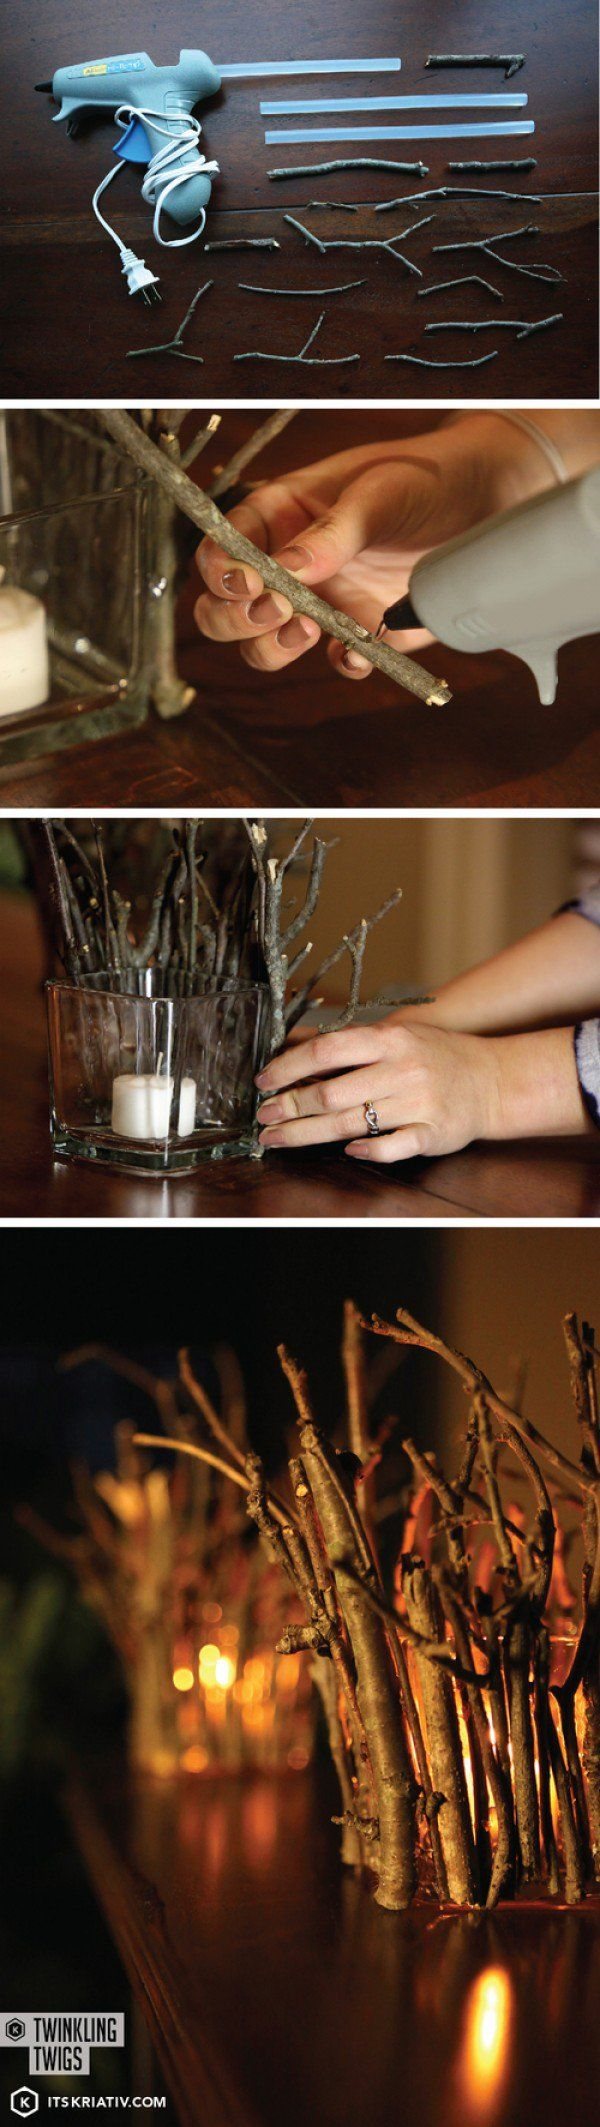 24493 best share your crafts images on pinterest crafts diy 10 easy diy craft projects to bring the cozy hygge into your home